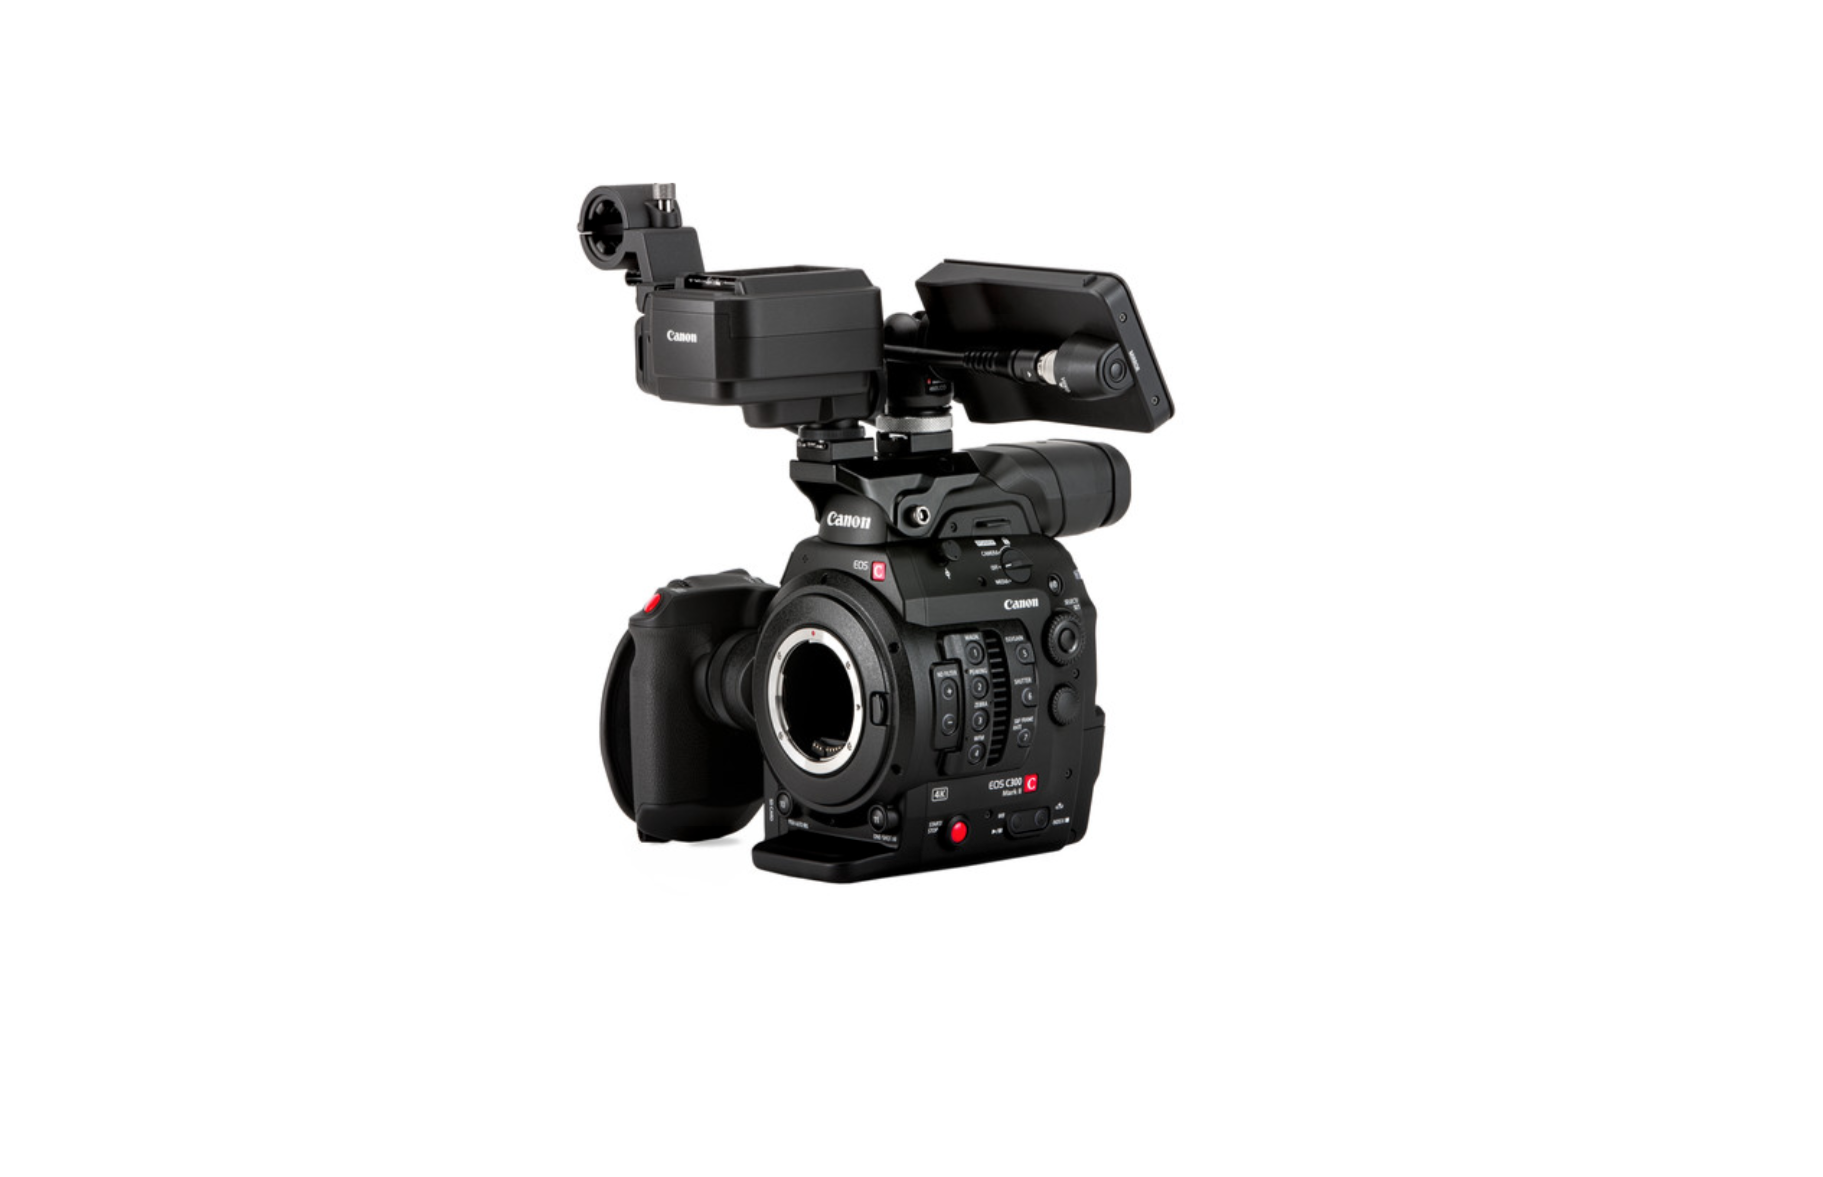 Canon C300 Mark II now available with the C200 touch screen